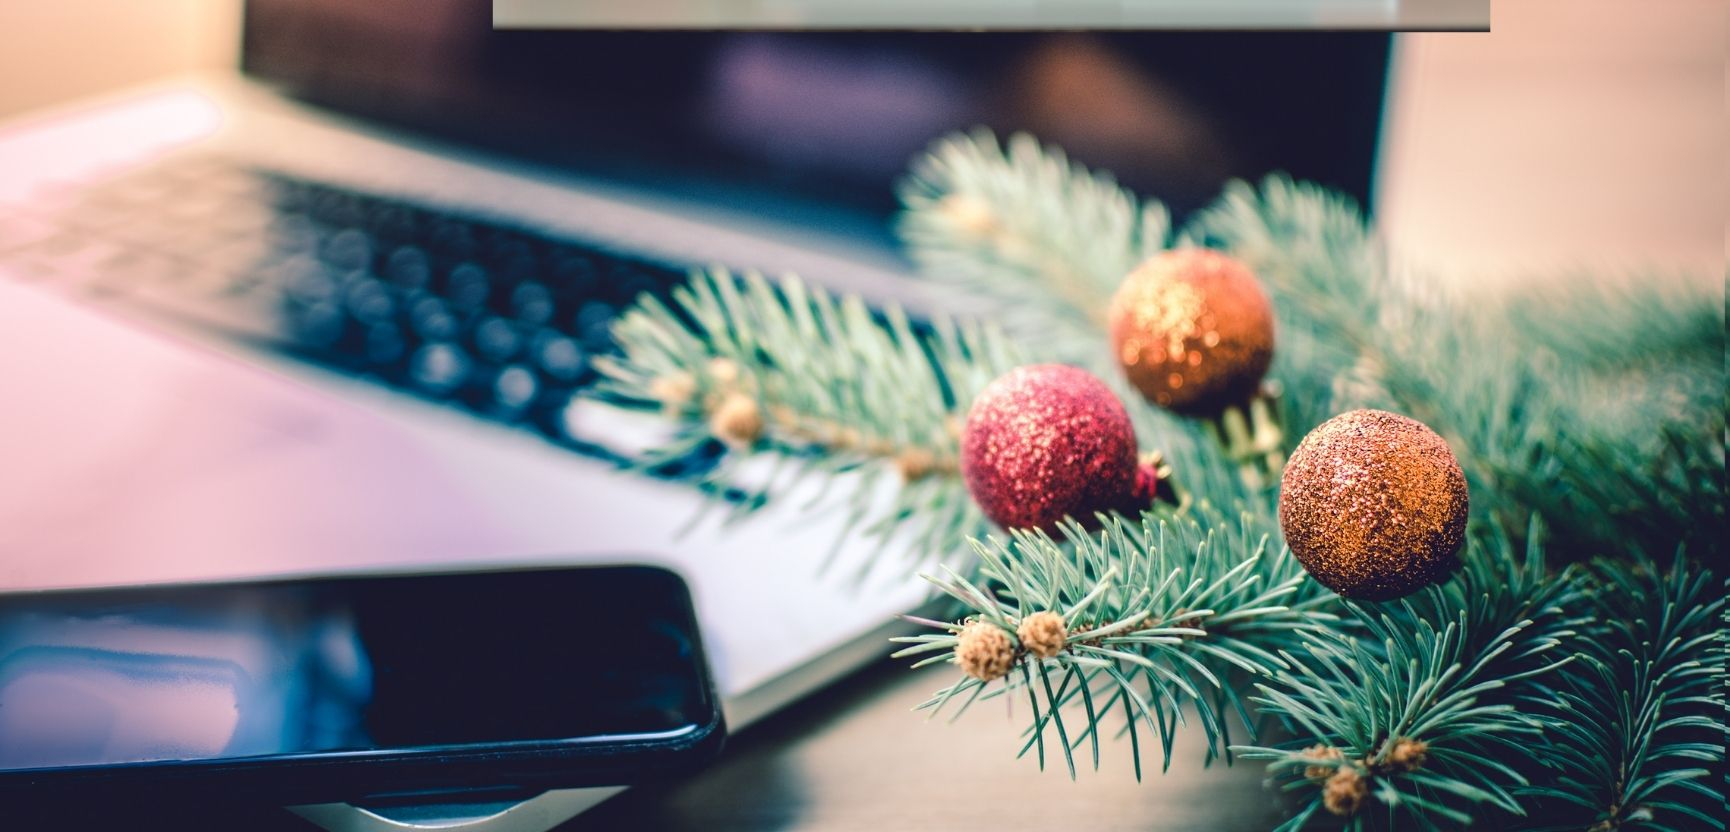 10 Ideas to Make Your Workspace More Festive